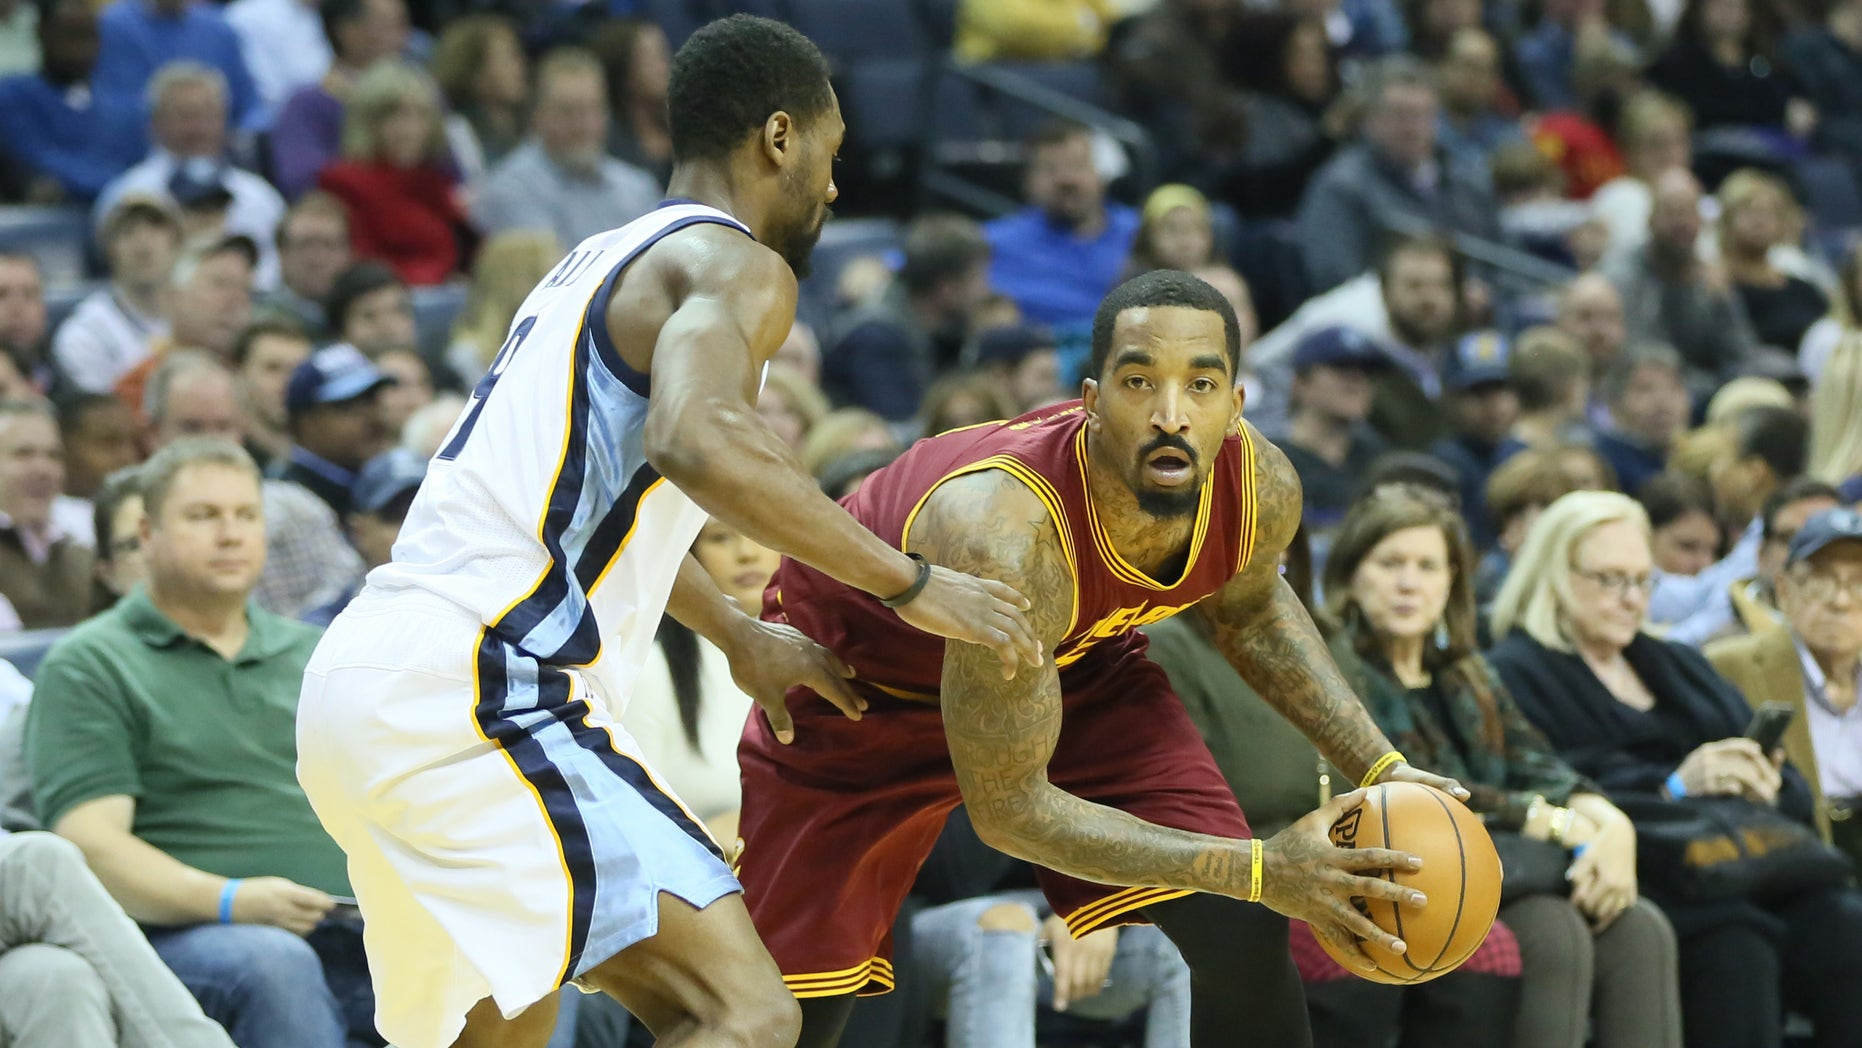 Dec 14, 2016; Memphis, TN, USA; Cleveland Cavaliers guard J.R. Smith (5) holds the ball as Memphis Grizzlies guard Tony Allen (9) defends at FedExForum. Memphis defeated Cleveland 93-85. Mandatory Credit: Nelson Chenault-USA TODAY Sports